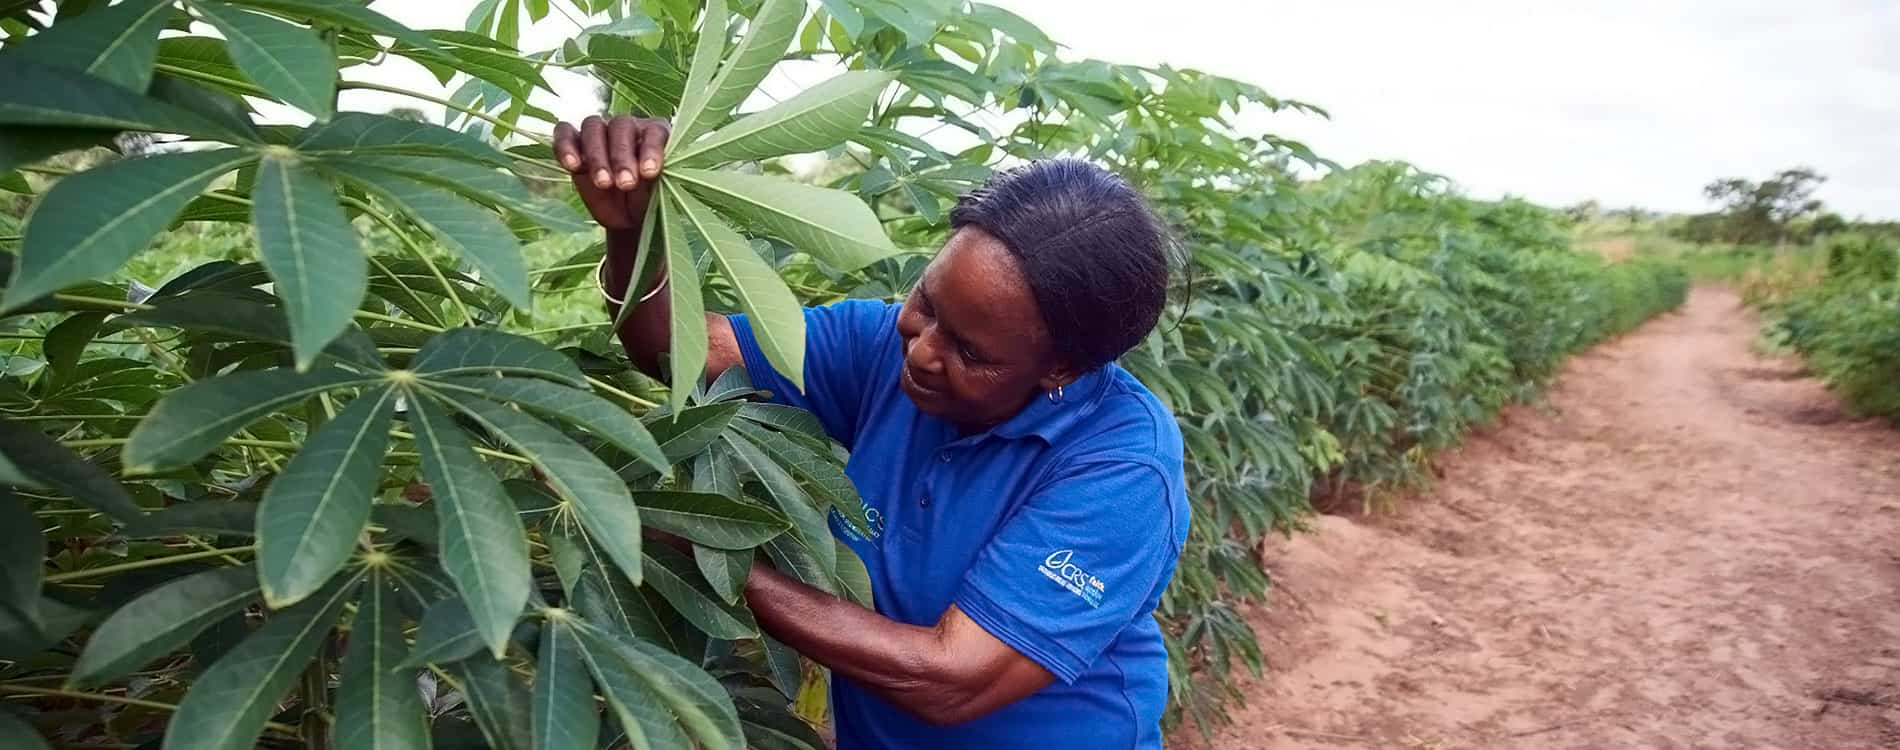 Project to build sustainable cassava seed system in Africa gets new phase